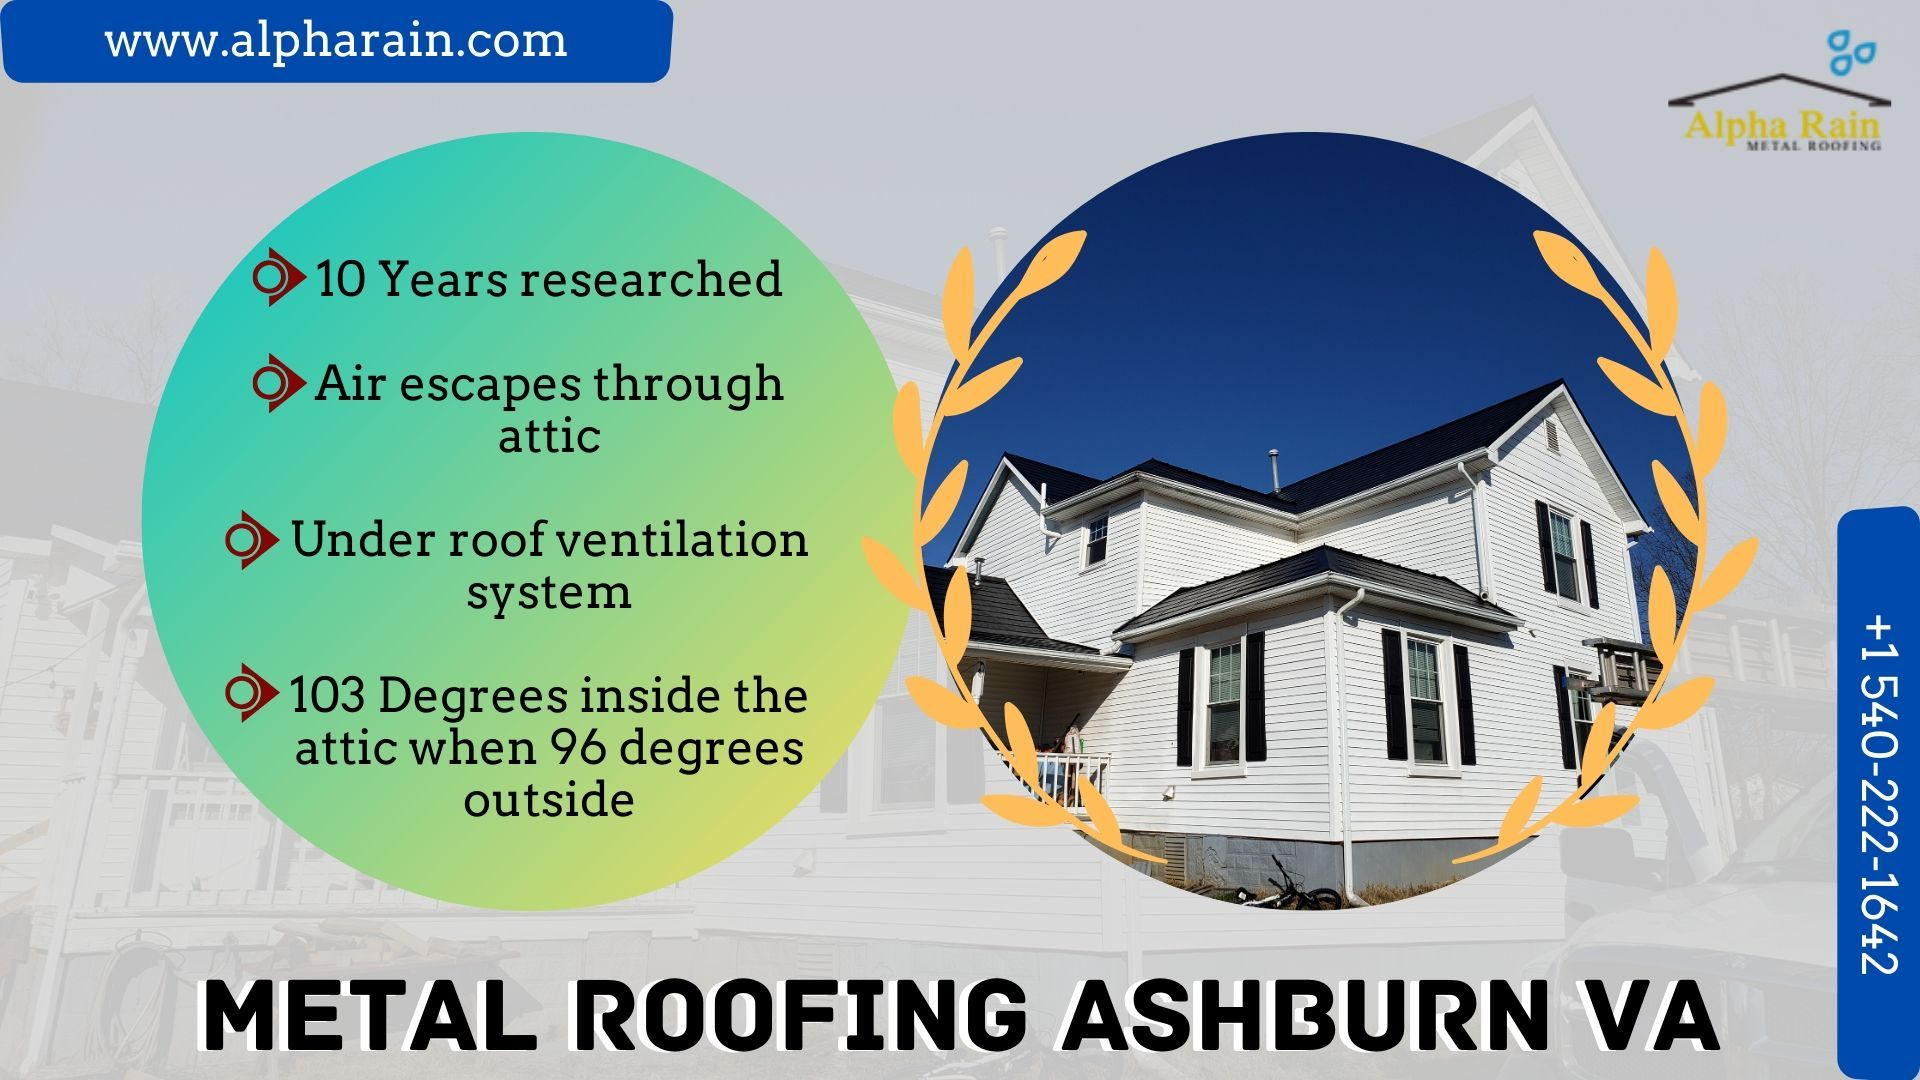 Metal Roofing Ashburn Va Is An Affordable And Energy Efficient Metal Roofing System We Are Searching Our Under Roof V In 2020 Metal Roof Metal Roofing Systems Roofing